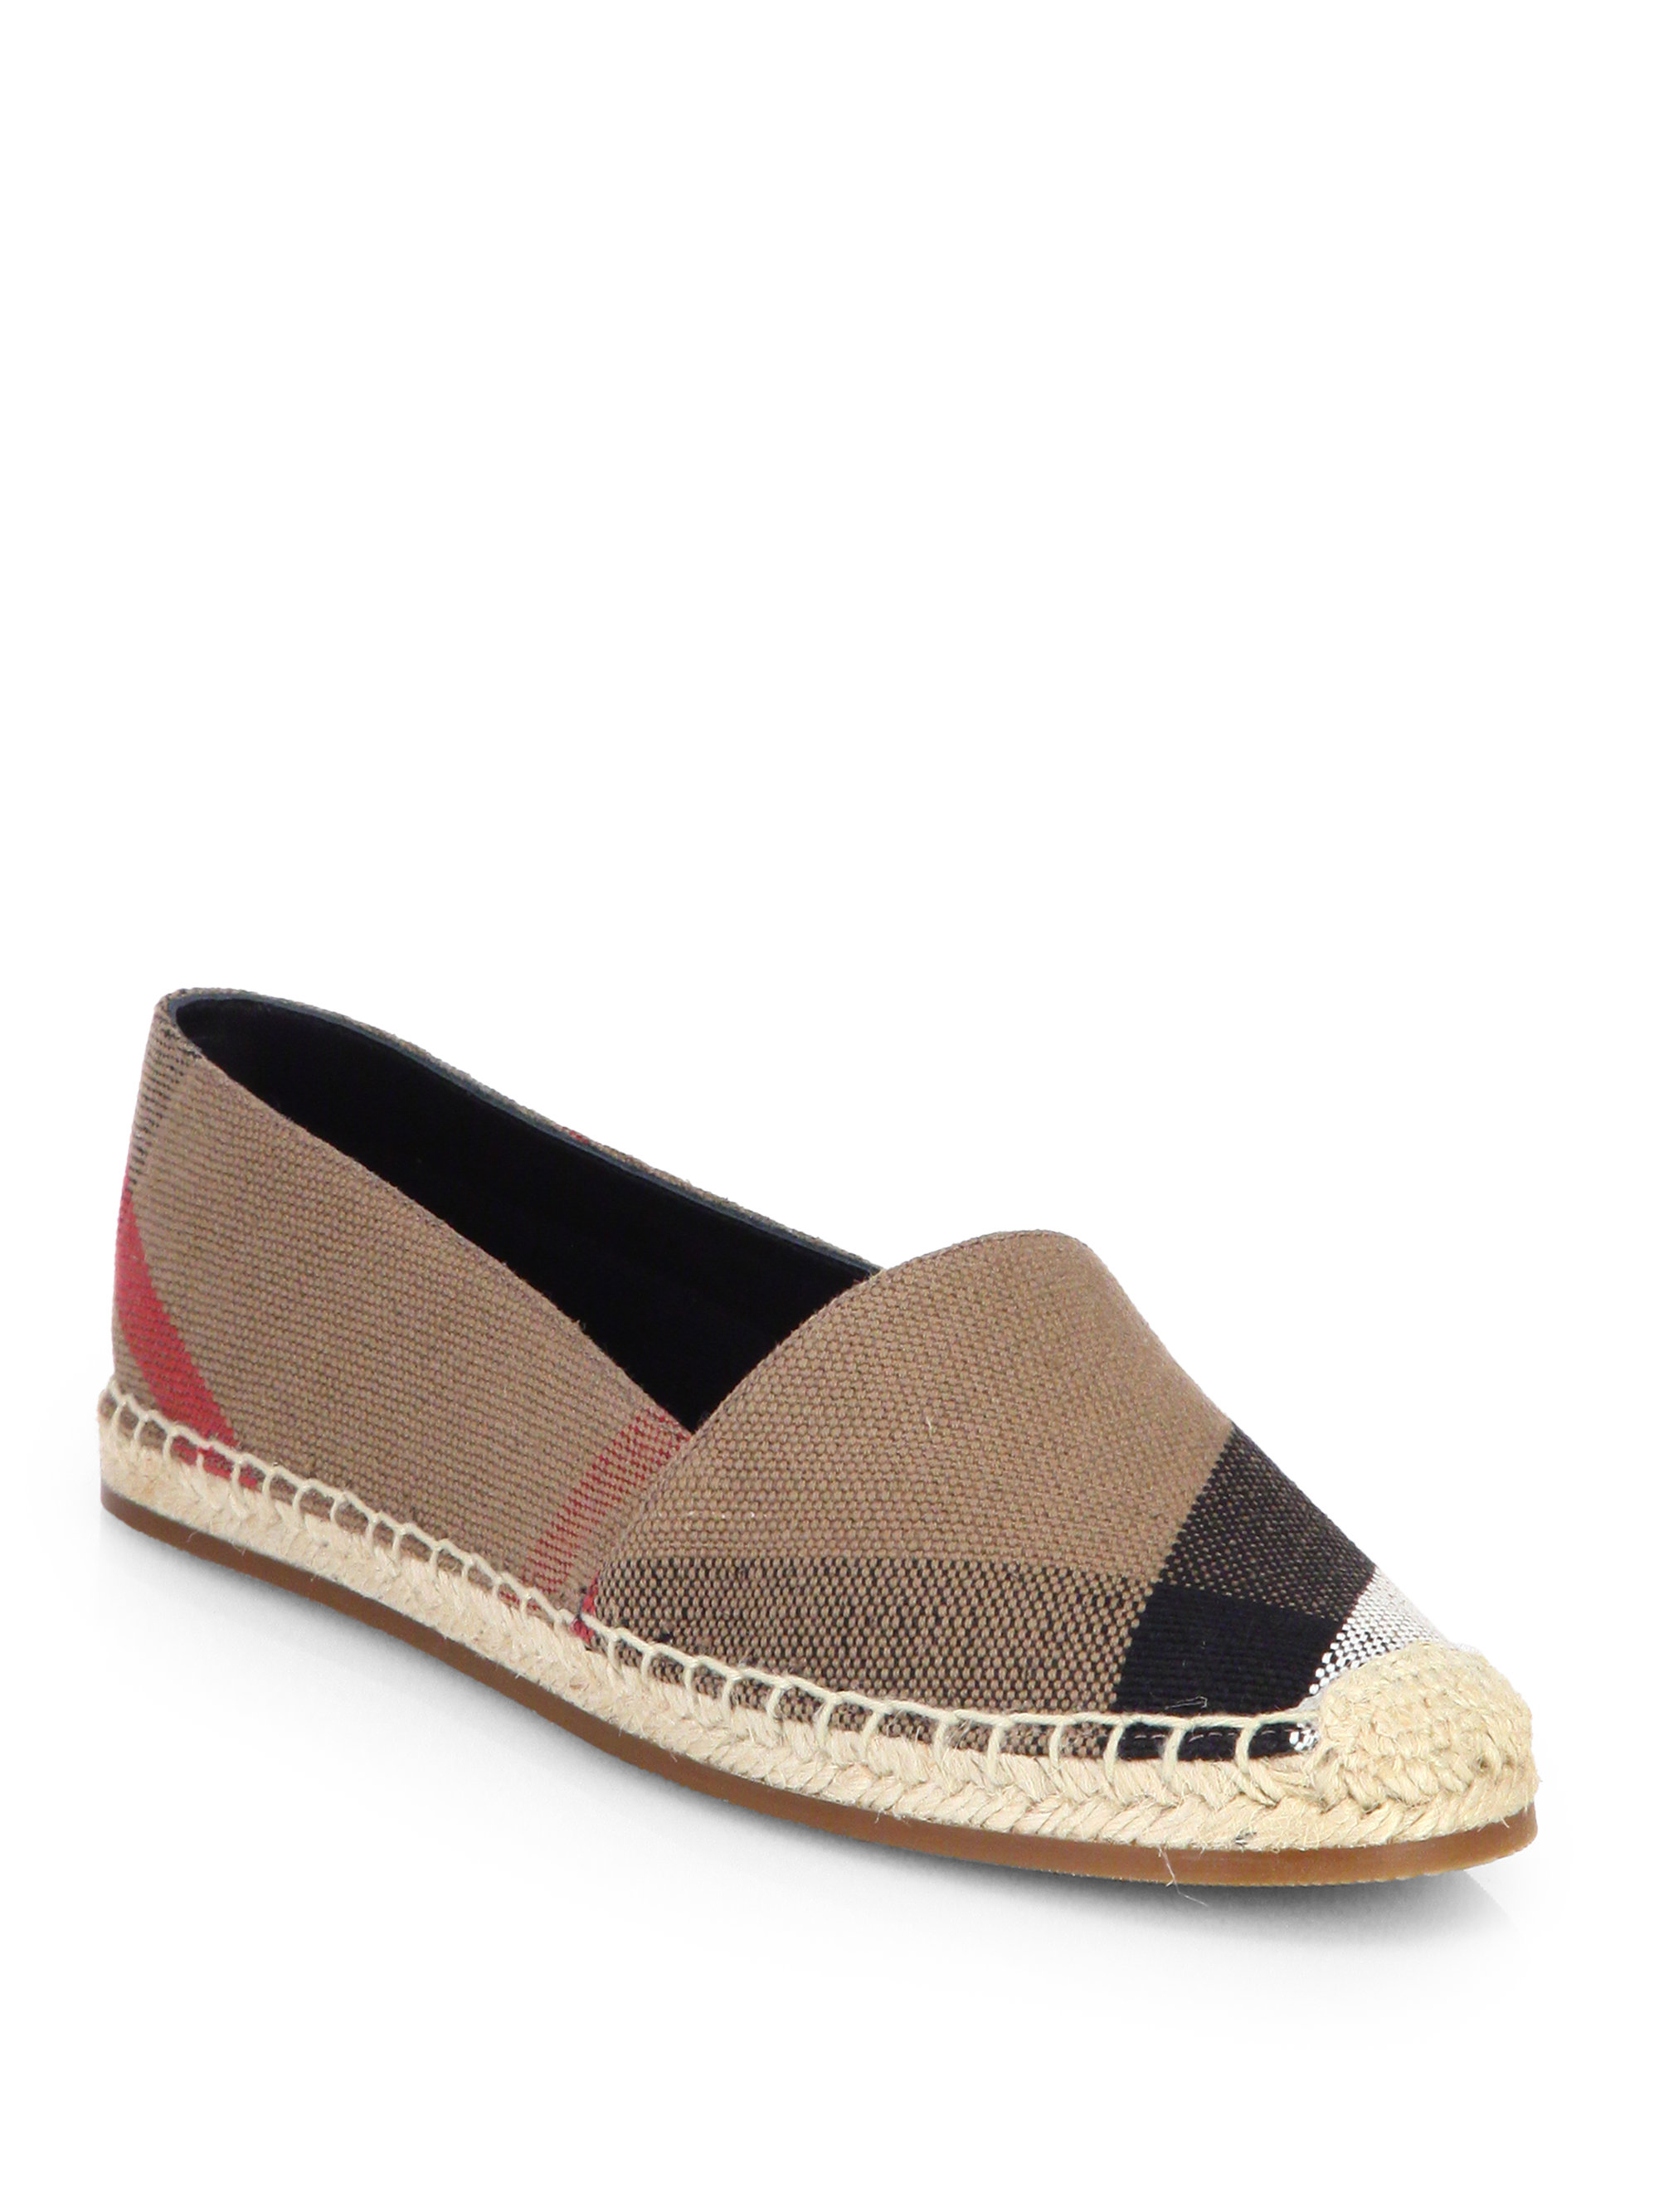 Burberry Shoes Sale Zappos